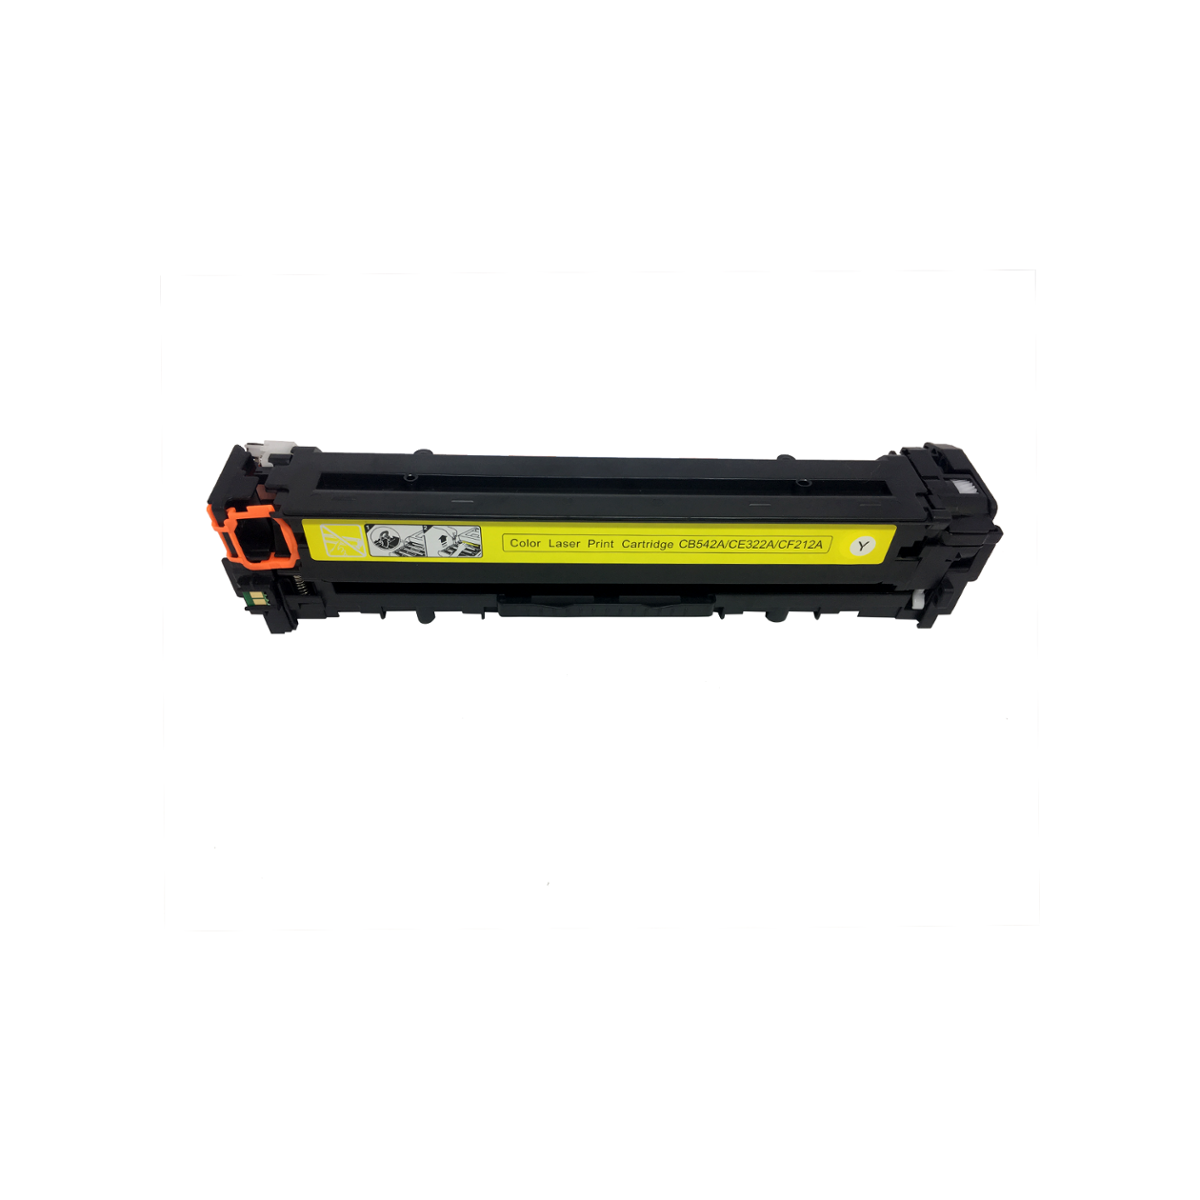 Zamiennik UNI do HP 125A, 128A, 131A, Canon 716, 731 - yellow